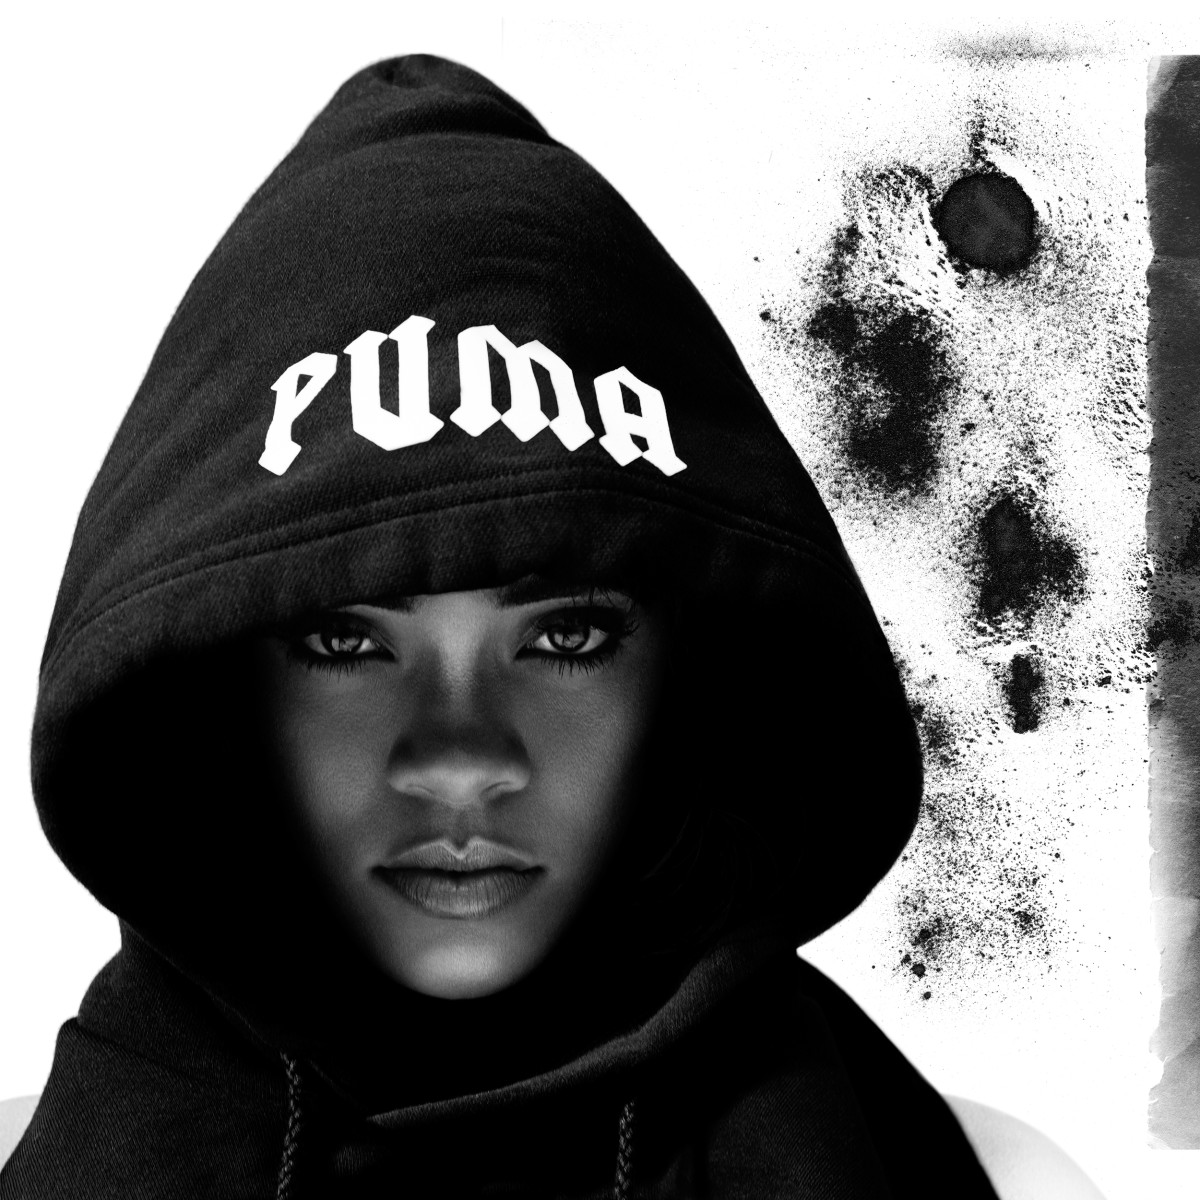 Like A Phoenix: How Puma rose from the ashes.